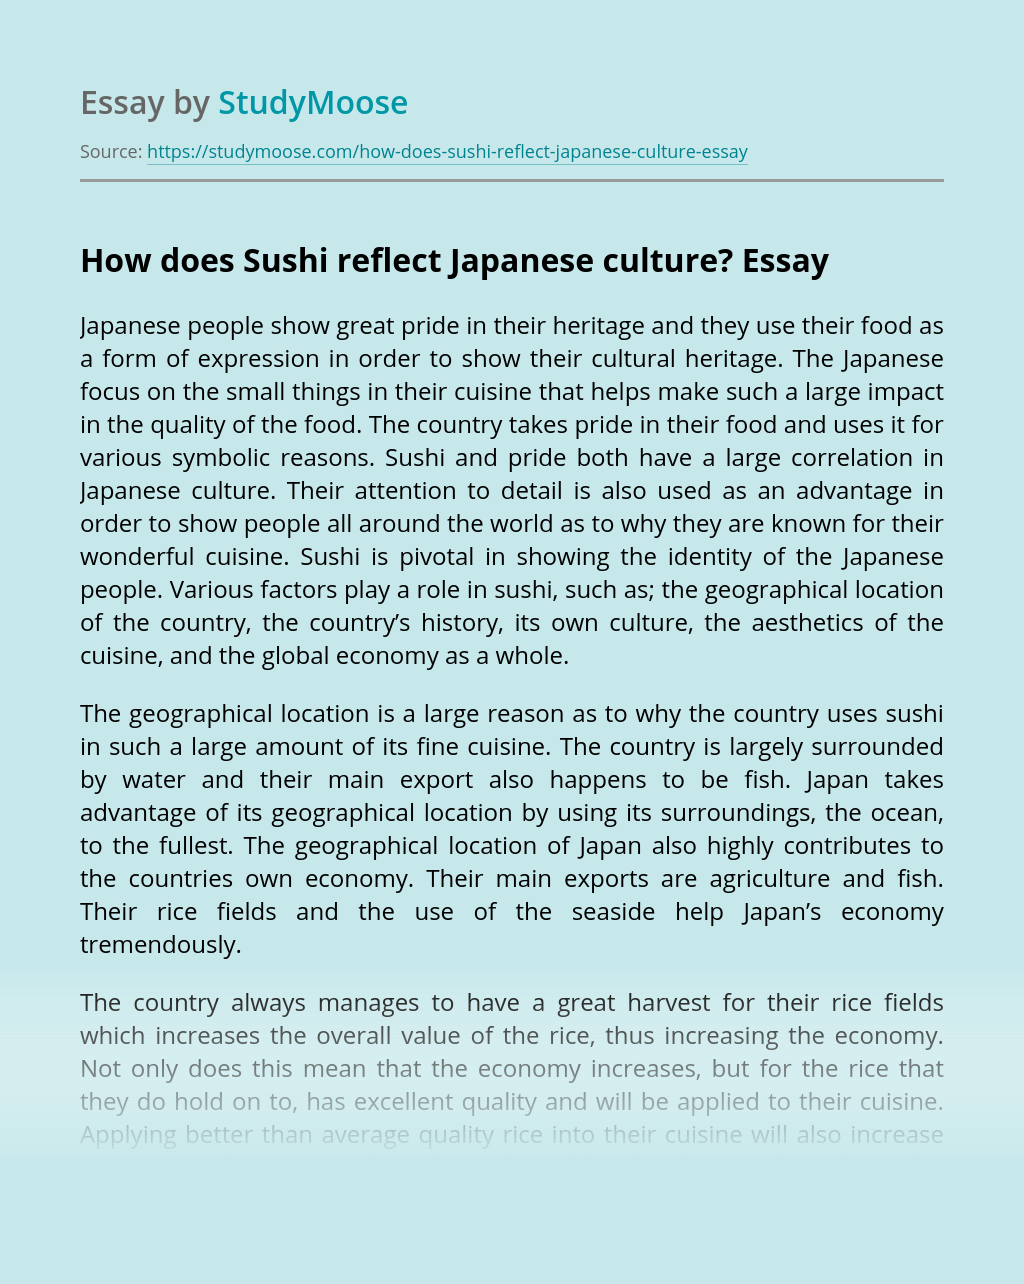 How does Sushi reflect Japanese culture?